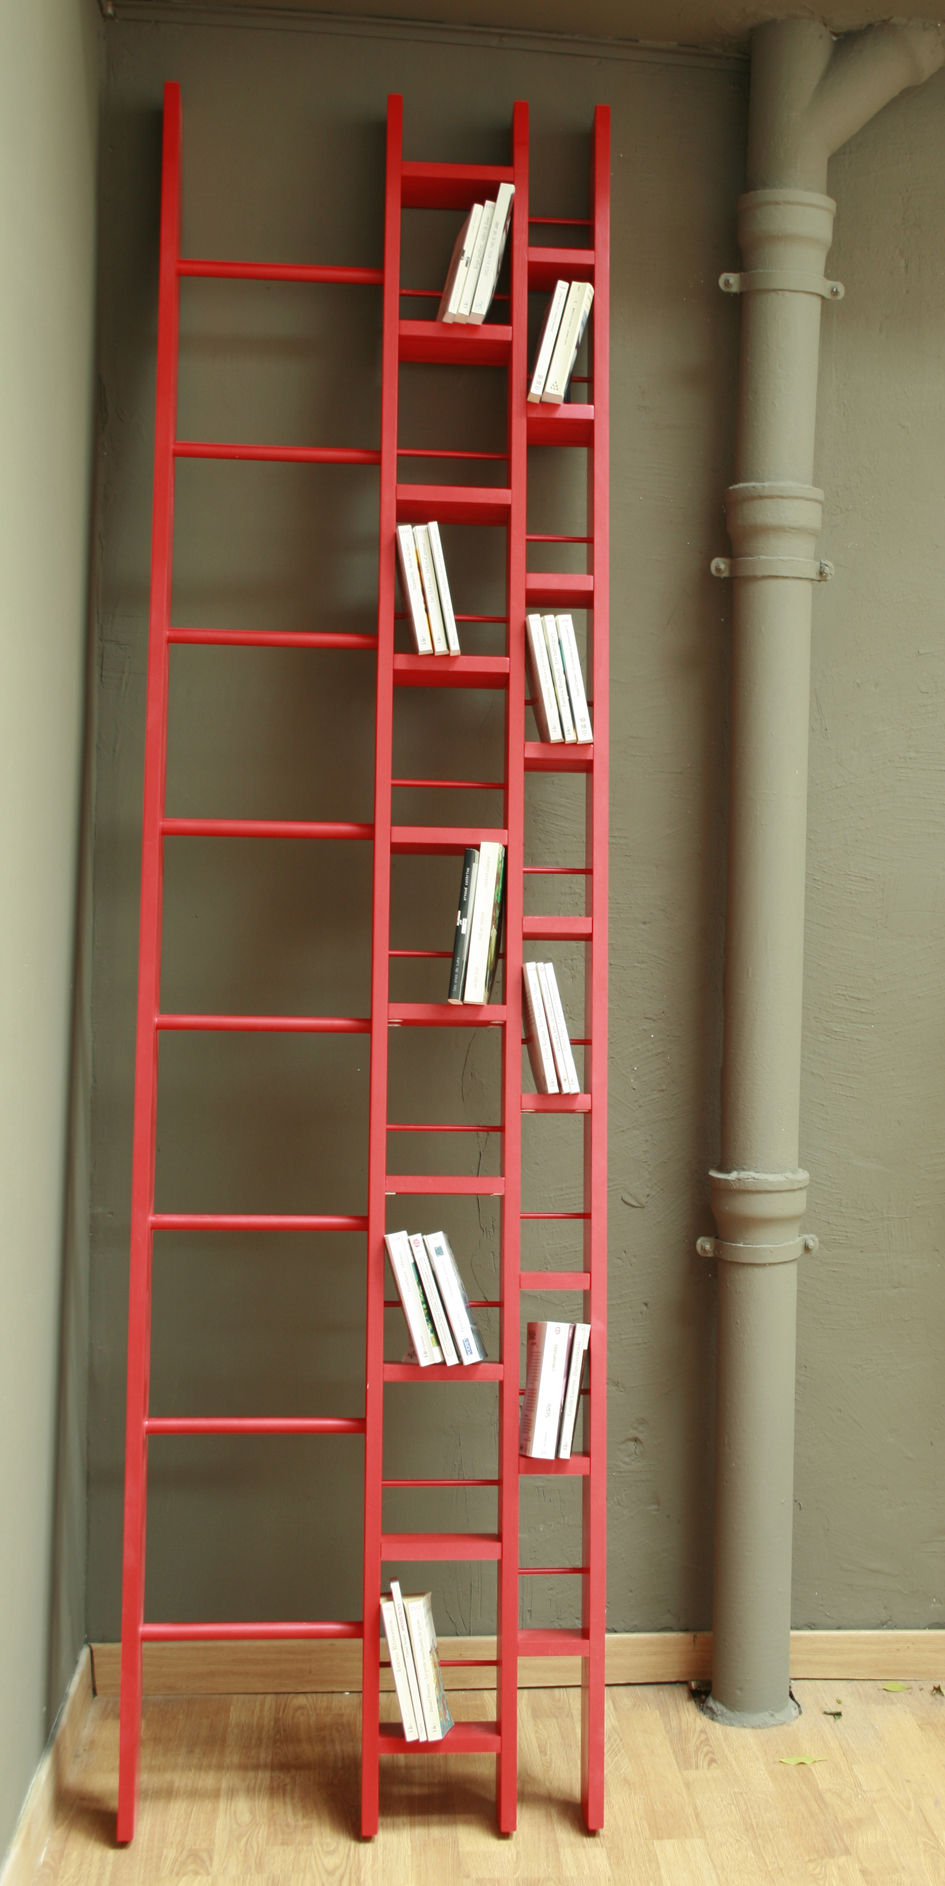 h bookcase width 64 cm red by la corbeille ForBibliotheque 20 Cm Profondeur